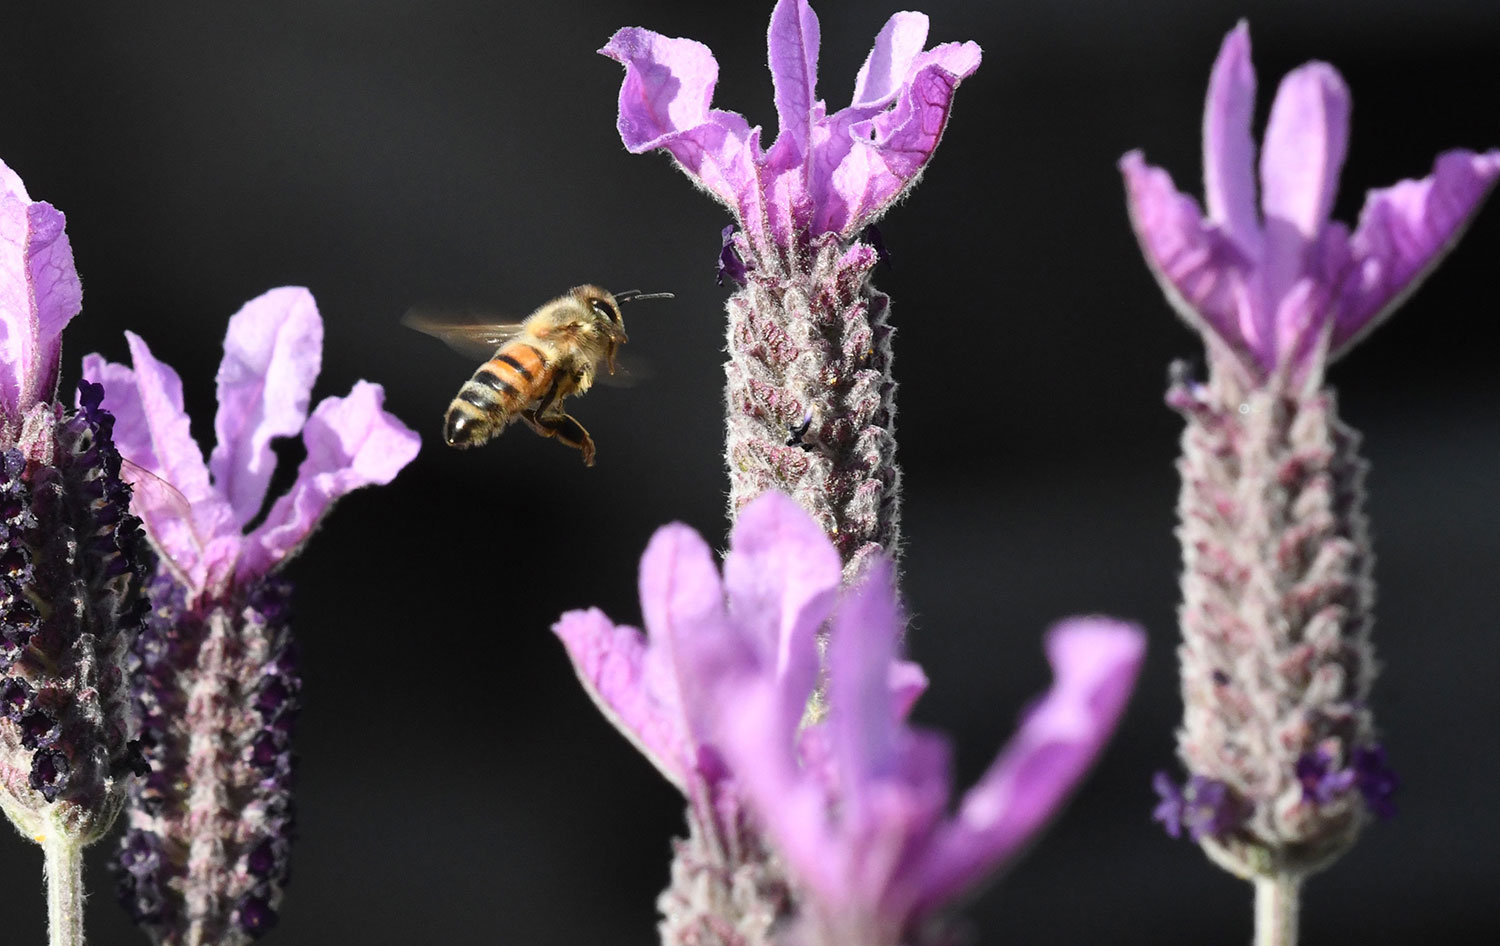 A bee hovers among purple flowers